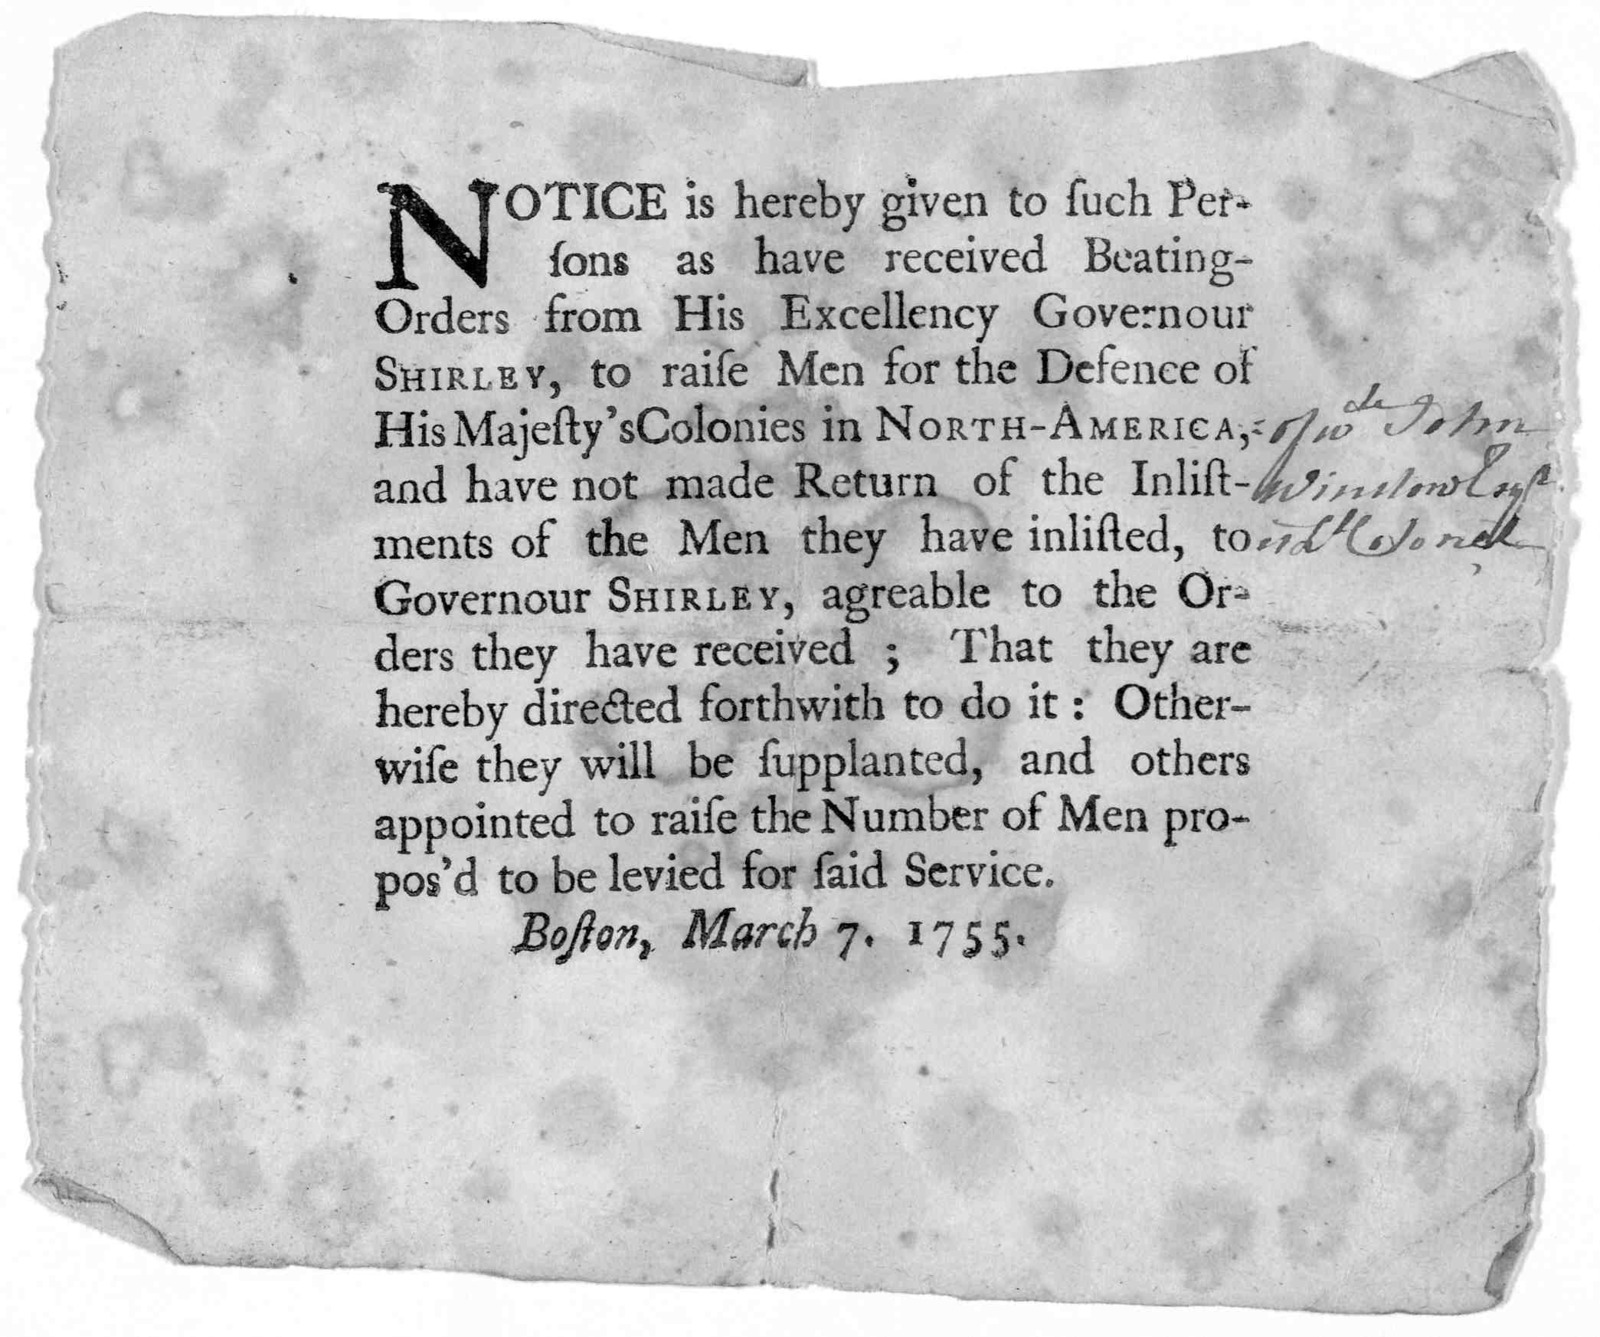 Notice is hereby given to such persons as have received beating orders from His Excellency Governour Shirley, to raise men for the defence of His Majesty's colonies in North America, and have not made return of the inlistments of the men they ha